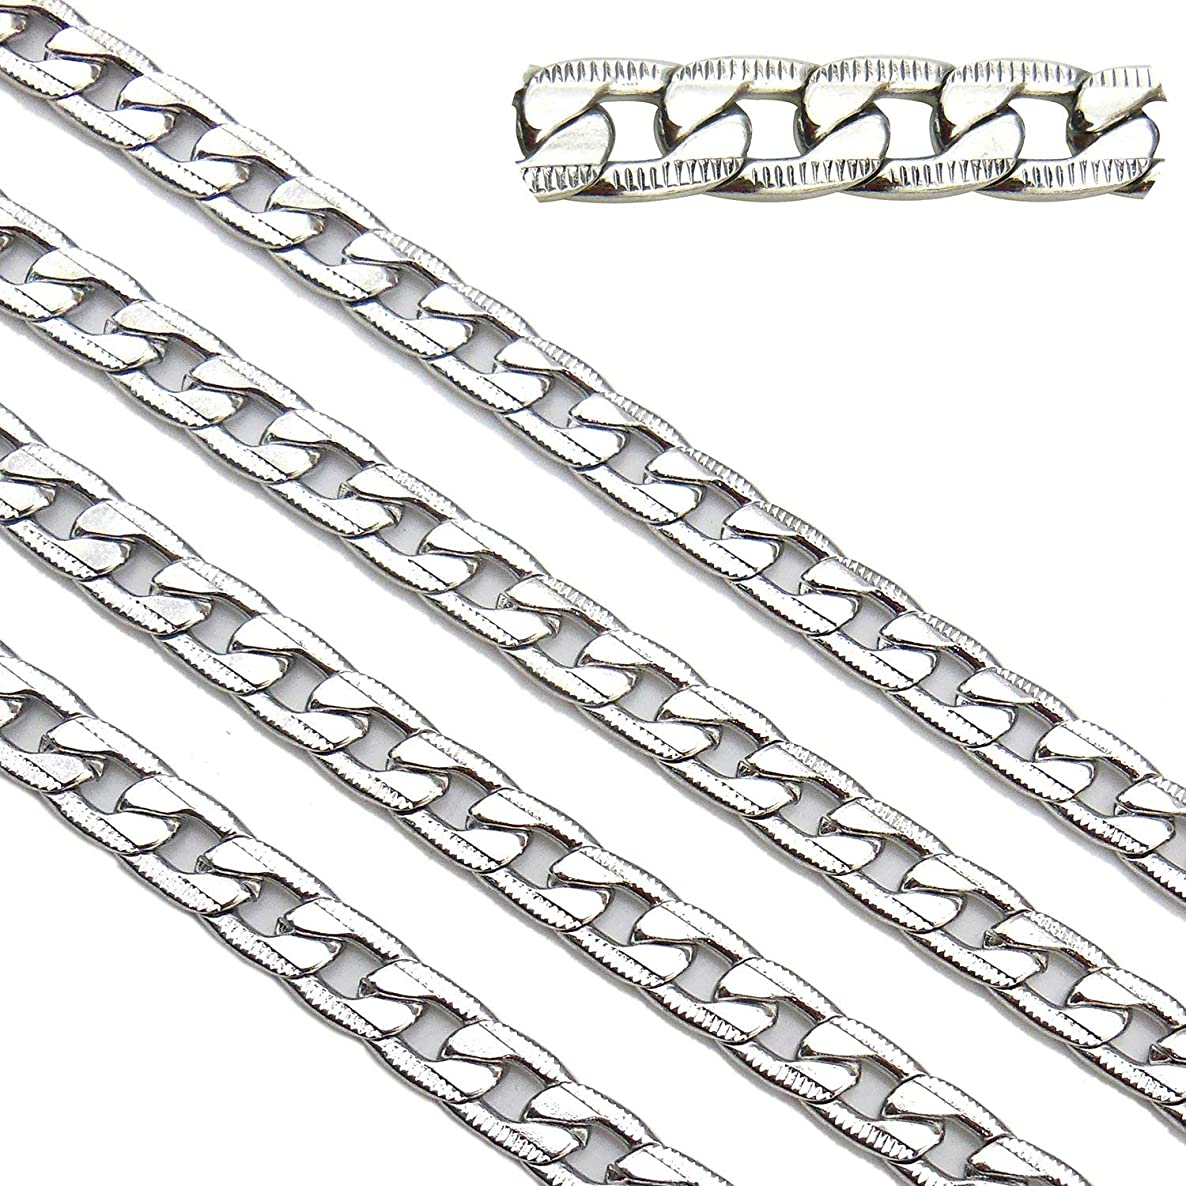 6.6ft Stainless Steel Texture Figaro Link Chains Findings Fit for Jewelry Making &DIY (SC-1004-C)